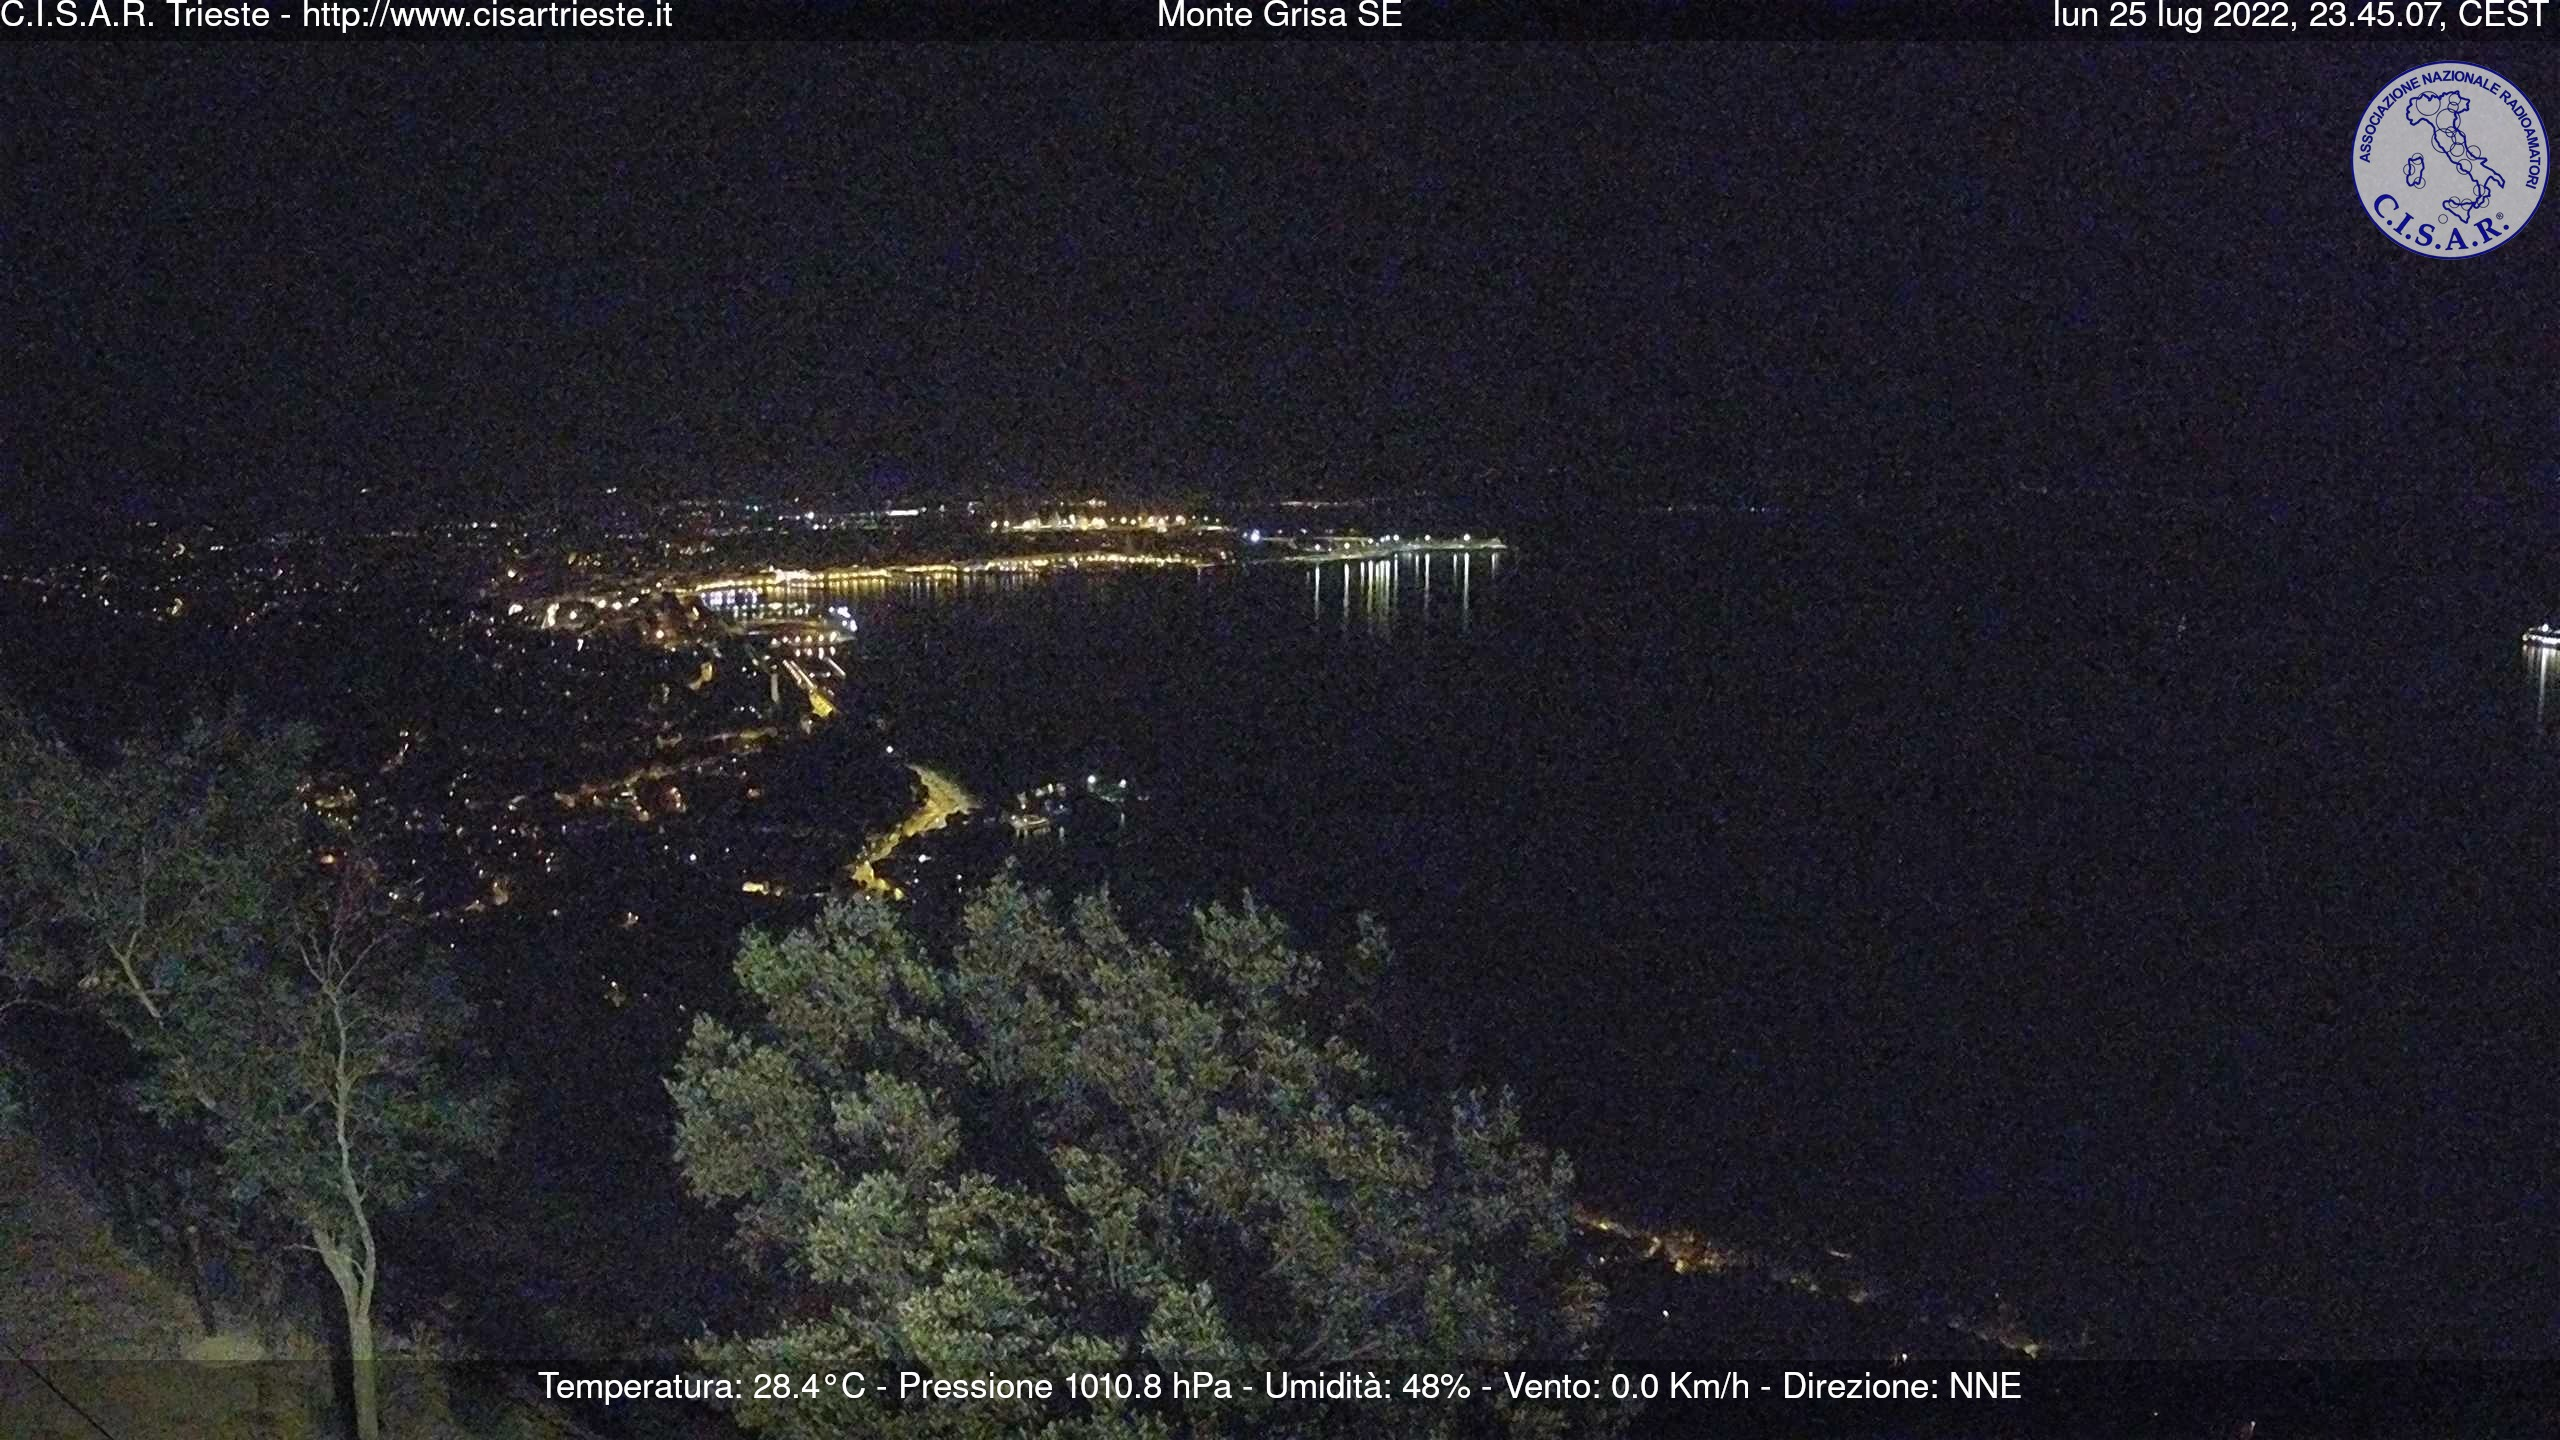 Webcam - Trieste (TS)